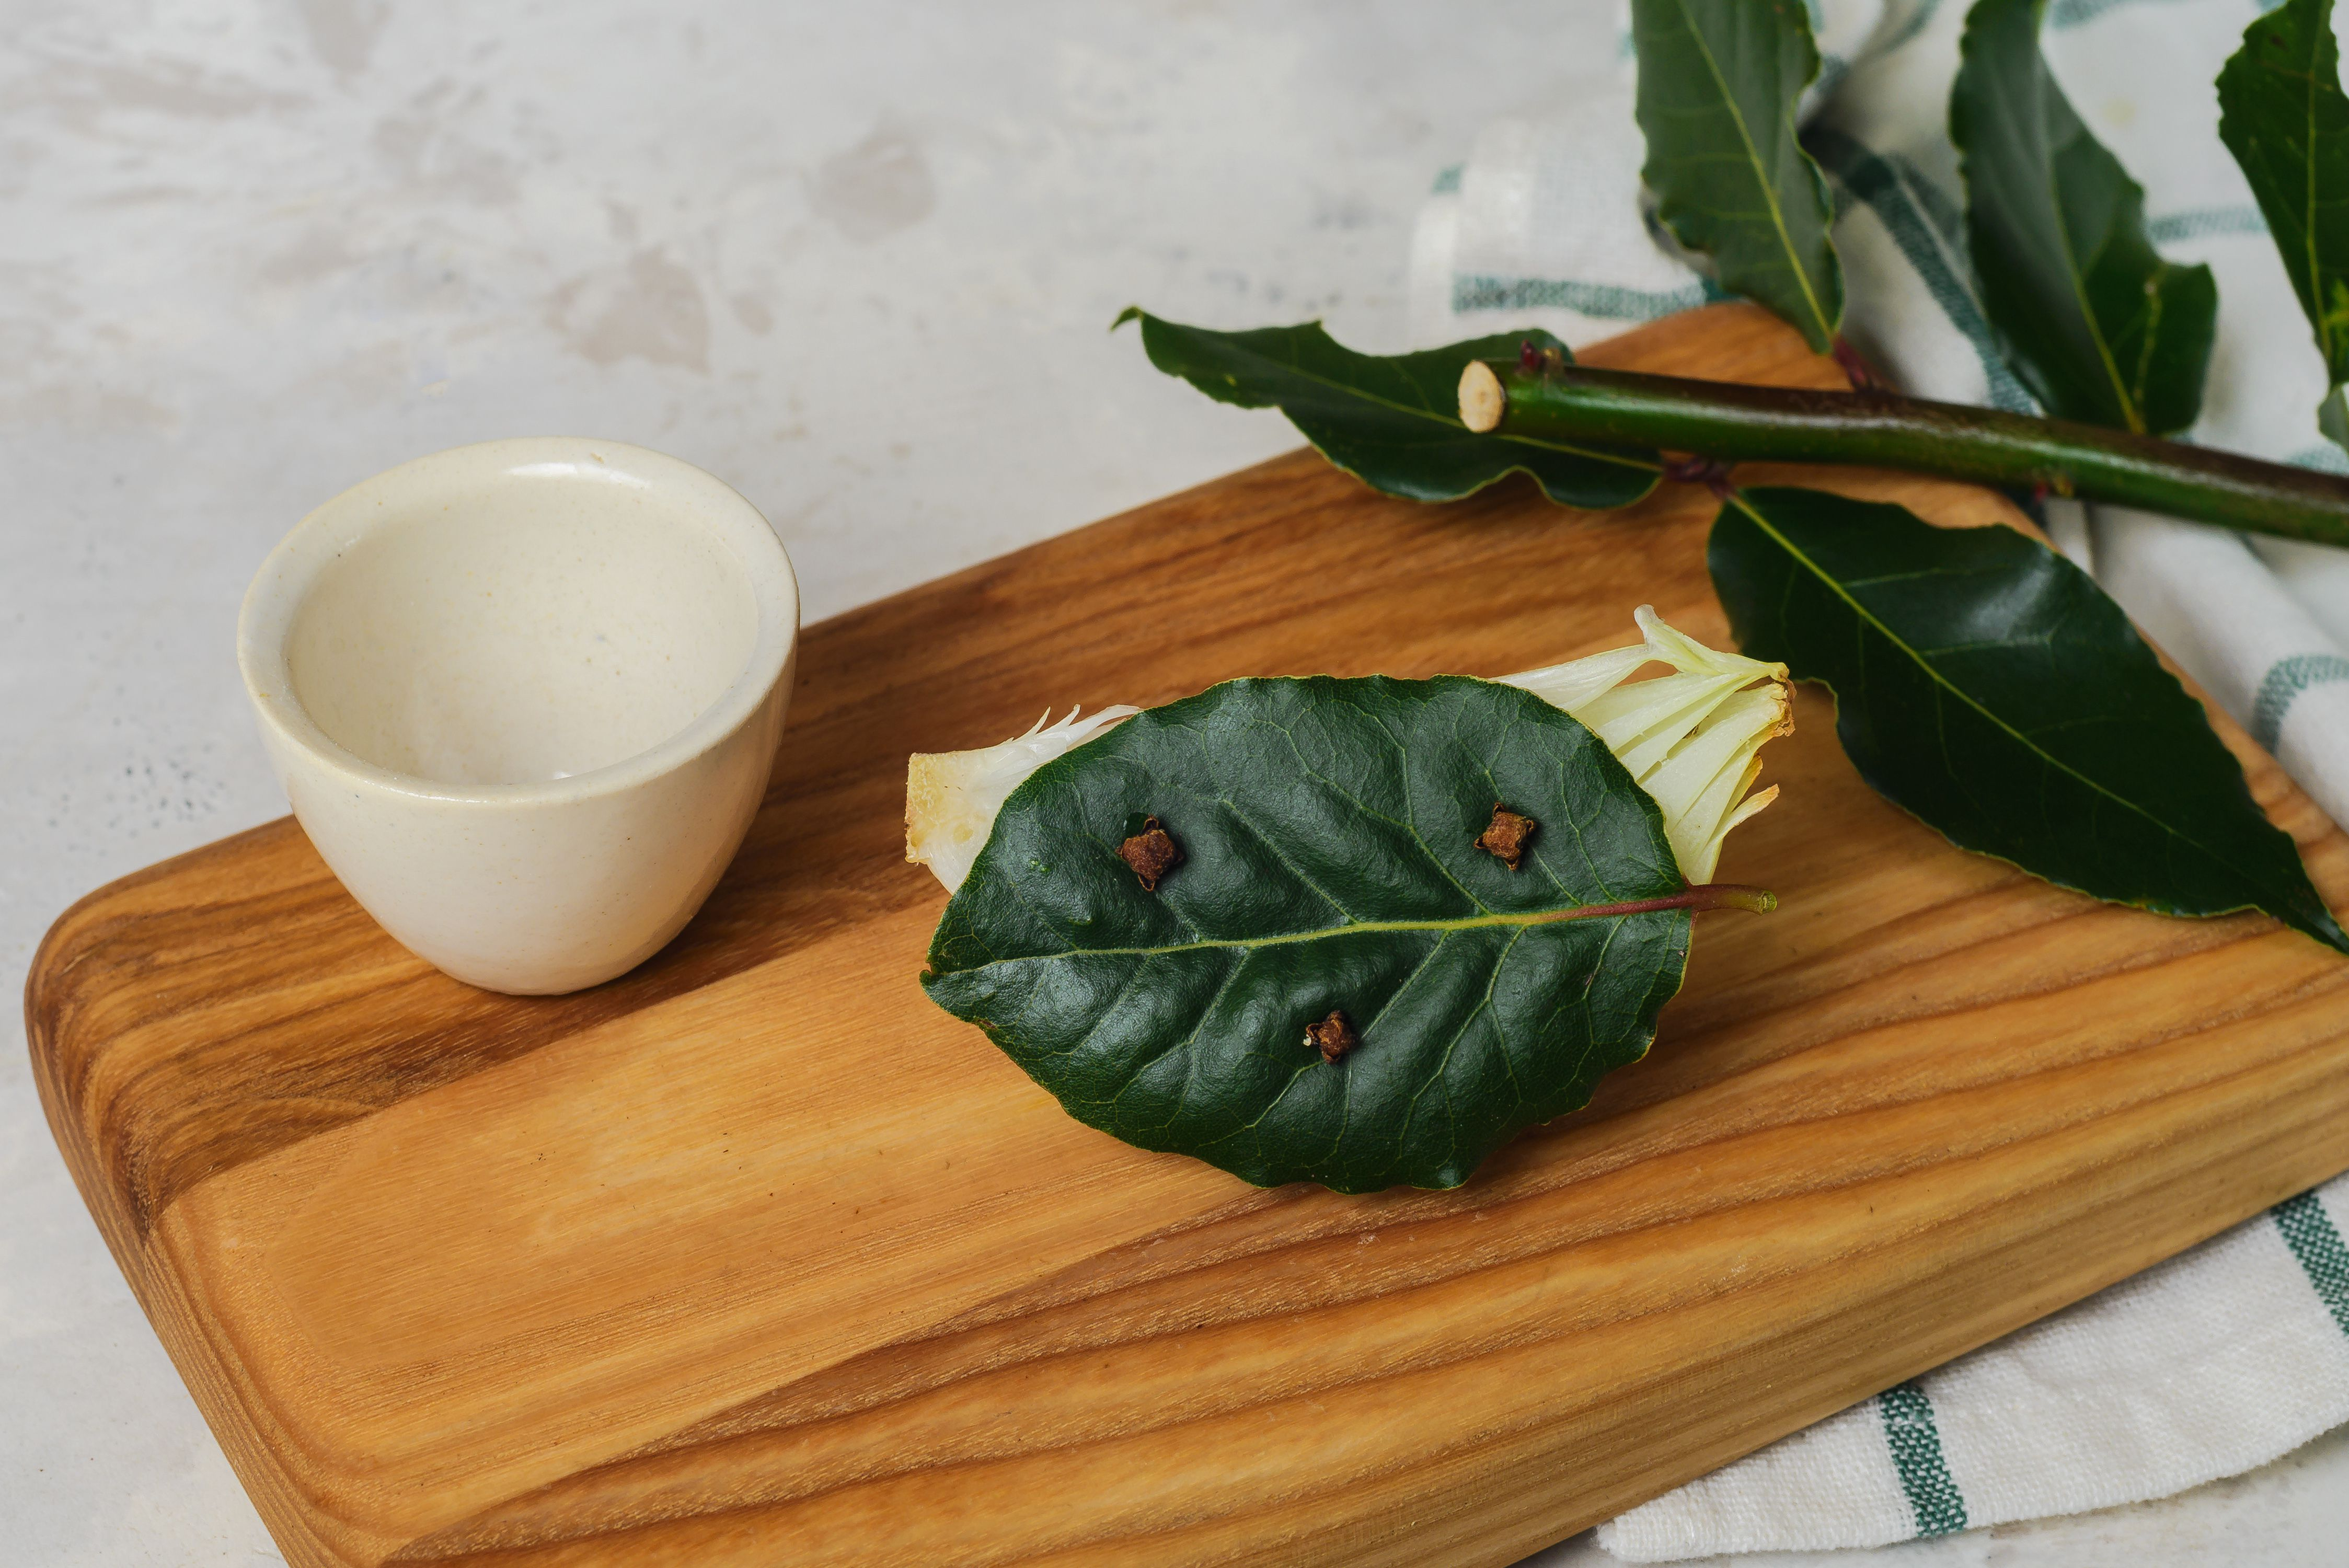 Attach bay leaf with cloves to onion